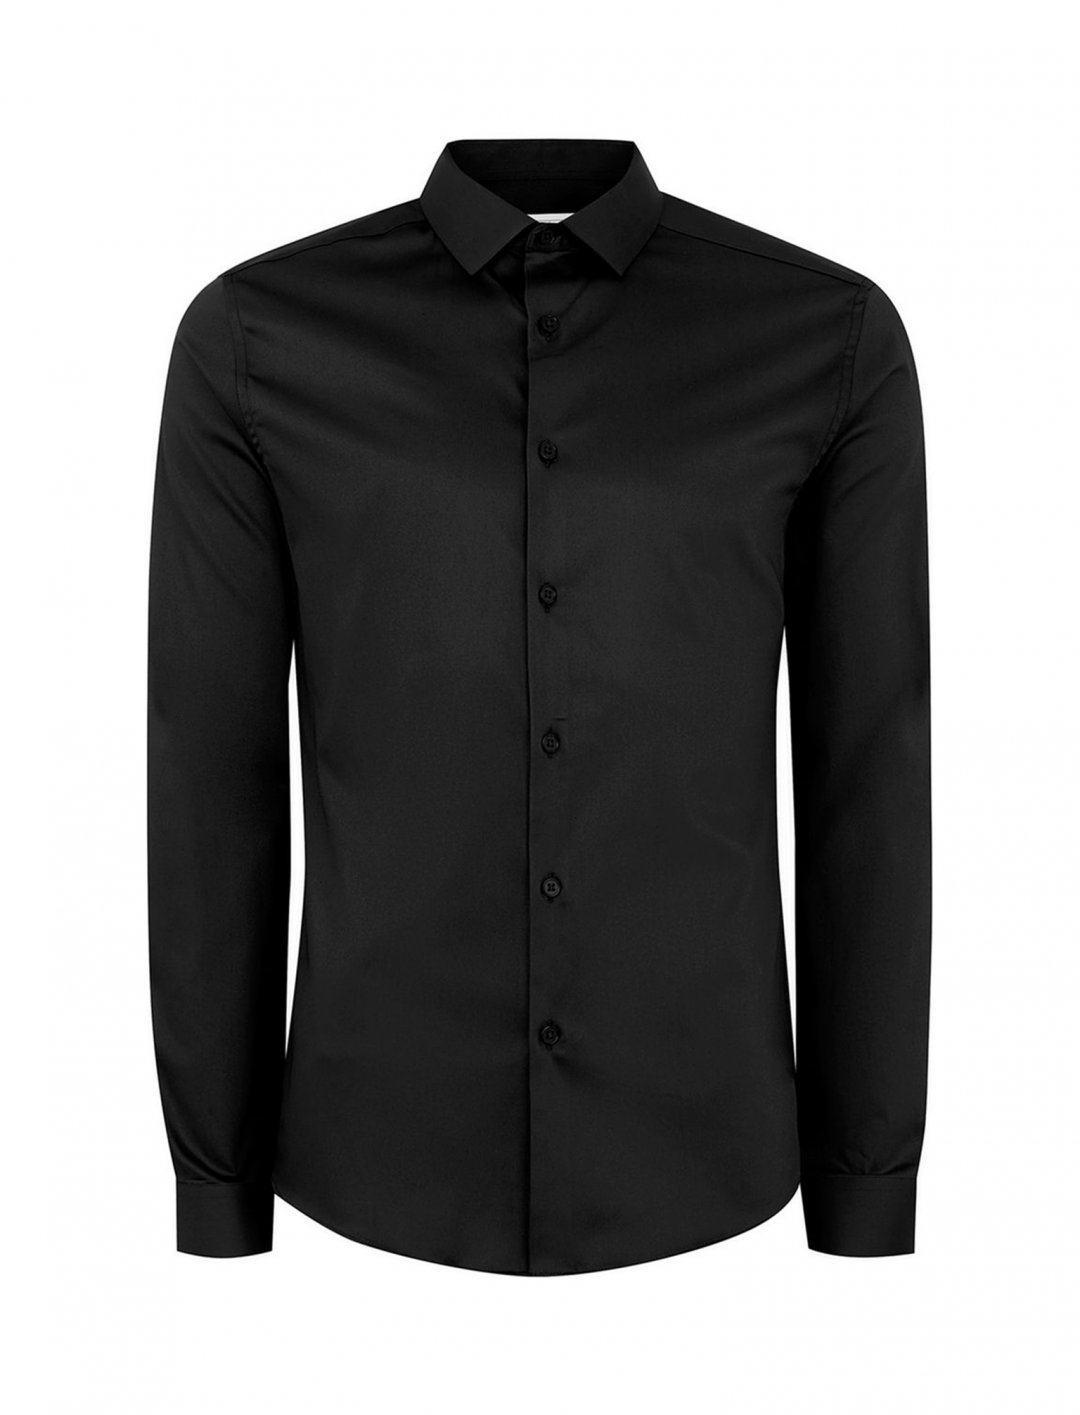 "Topman Satin Shirt {""id"":5,""product_section_id"":1,""name"":""Clothing"",""order"":5} Topman"